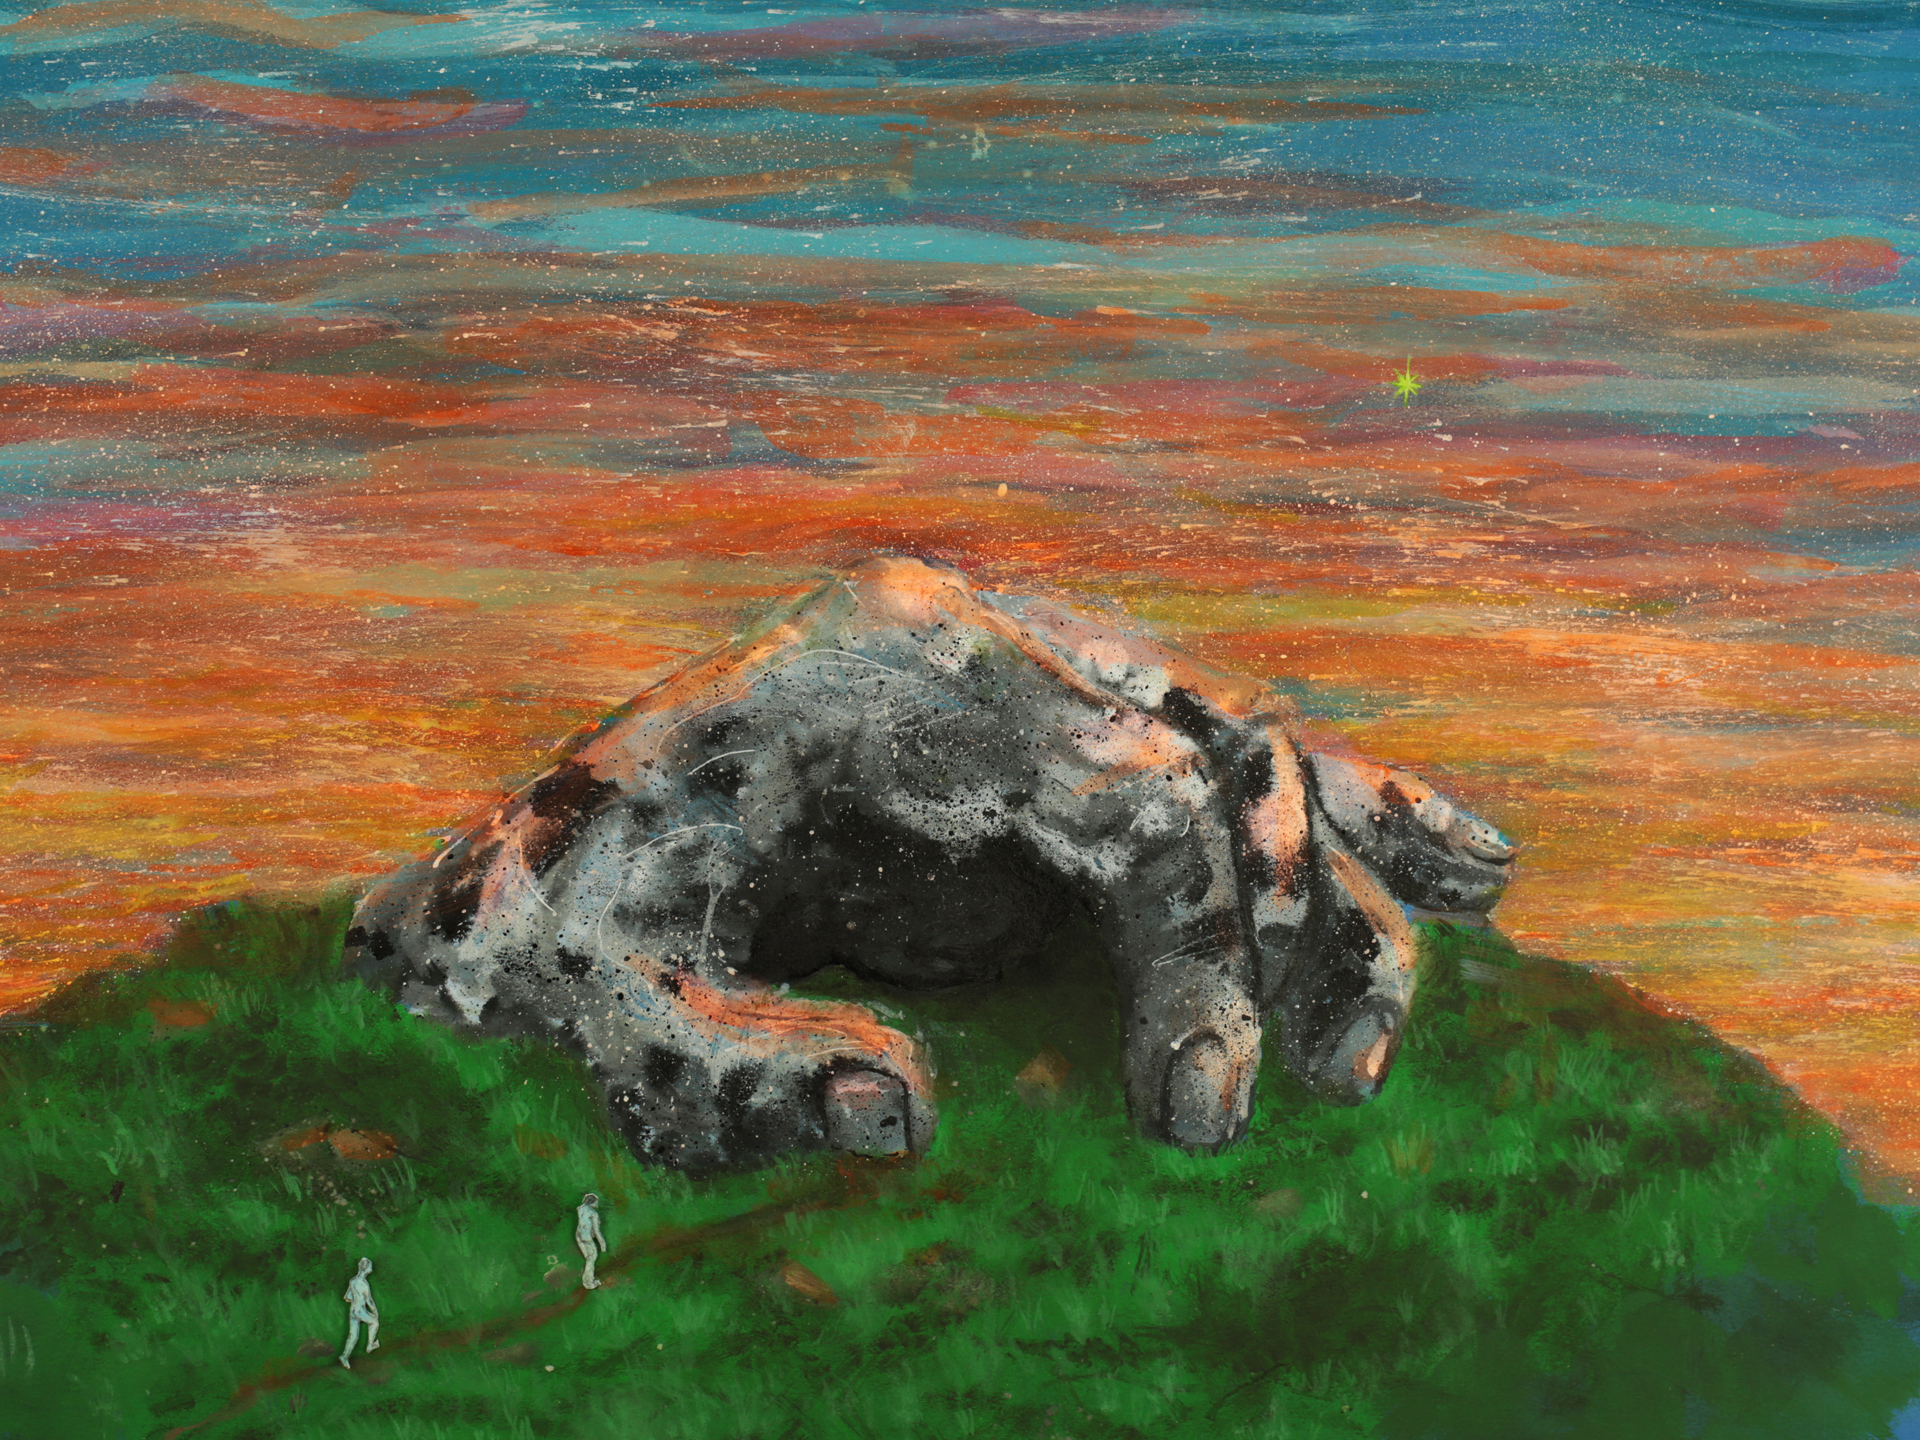 A pastel drawing of a grassy hill summit at sunset. The sky undulates from top to bottom: dark blue, light blue, red, purple, orange and yellow. A yellow star glitters in the distance. In the foreground, the stony summit of the hill seems to form into the shape of a half-clenched human fist, with a darkened cave opening appearing in the centre of the rock. Two tiny human figures appear to approach the hilltop, walking in the direction of the cave opening.